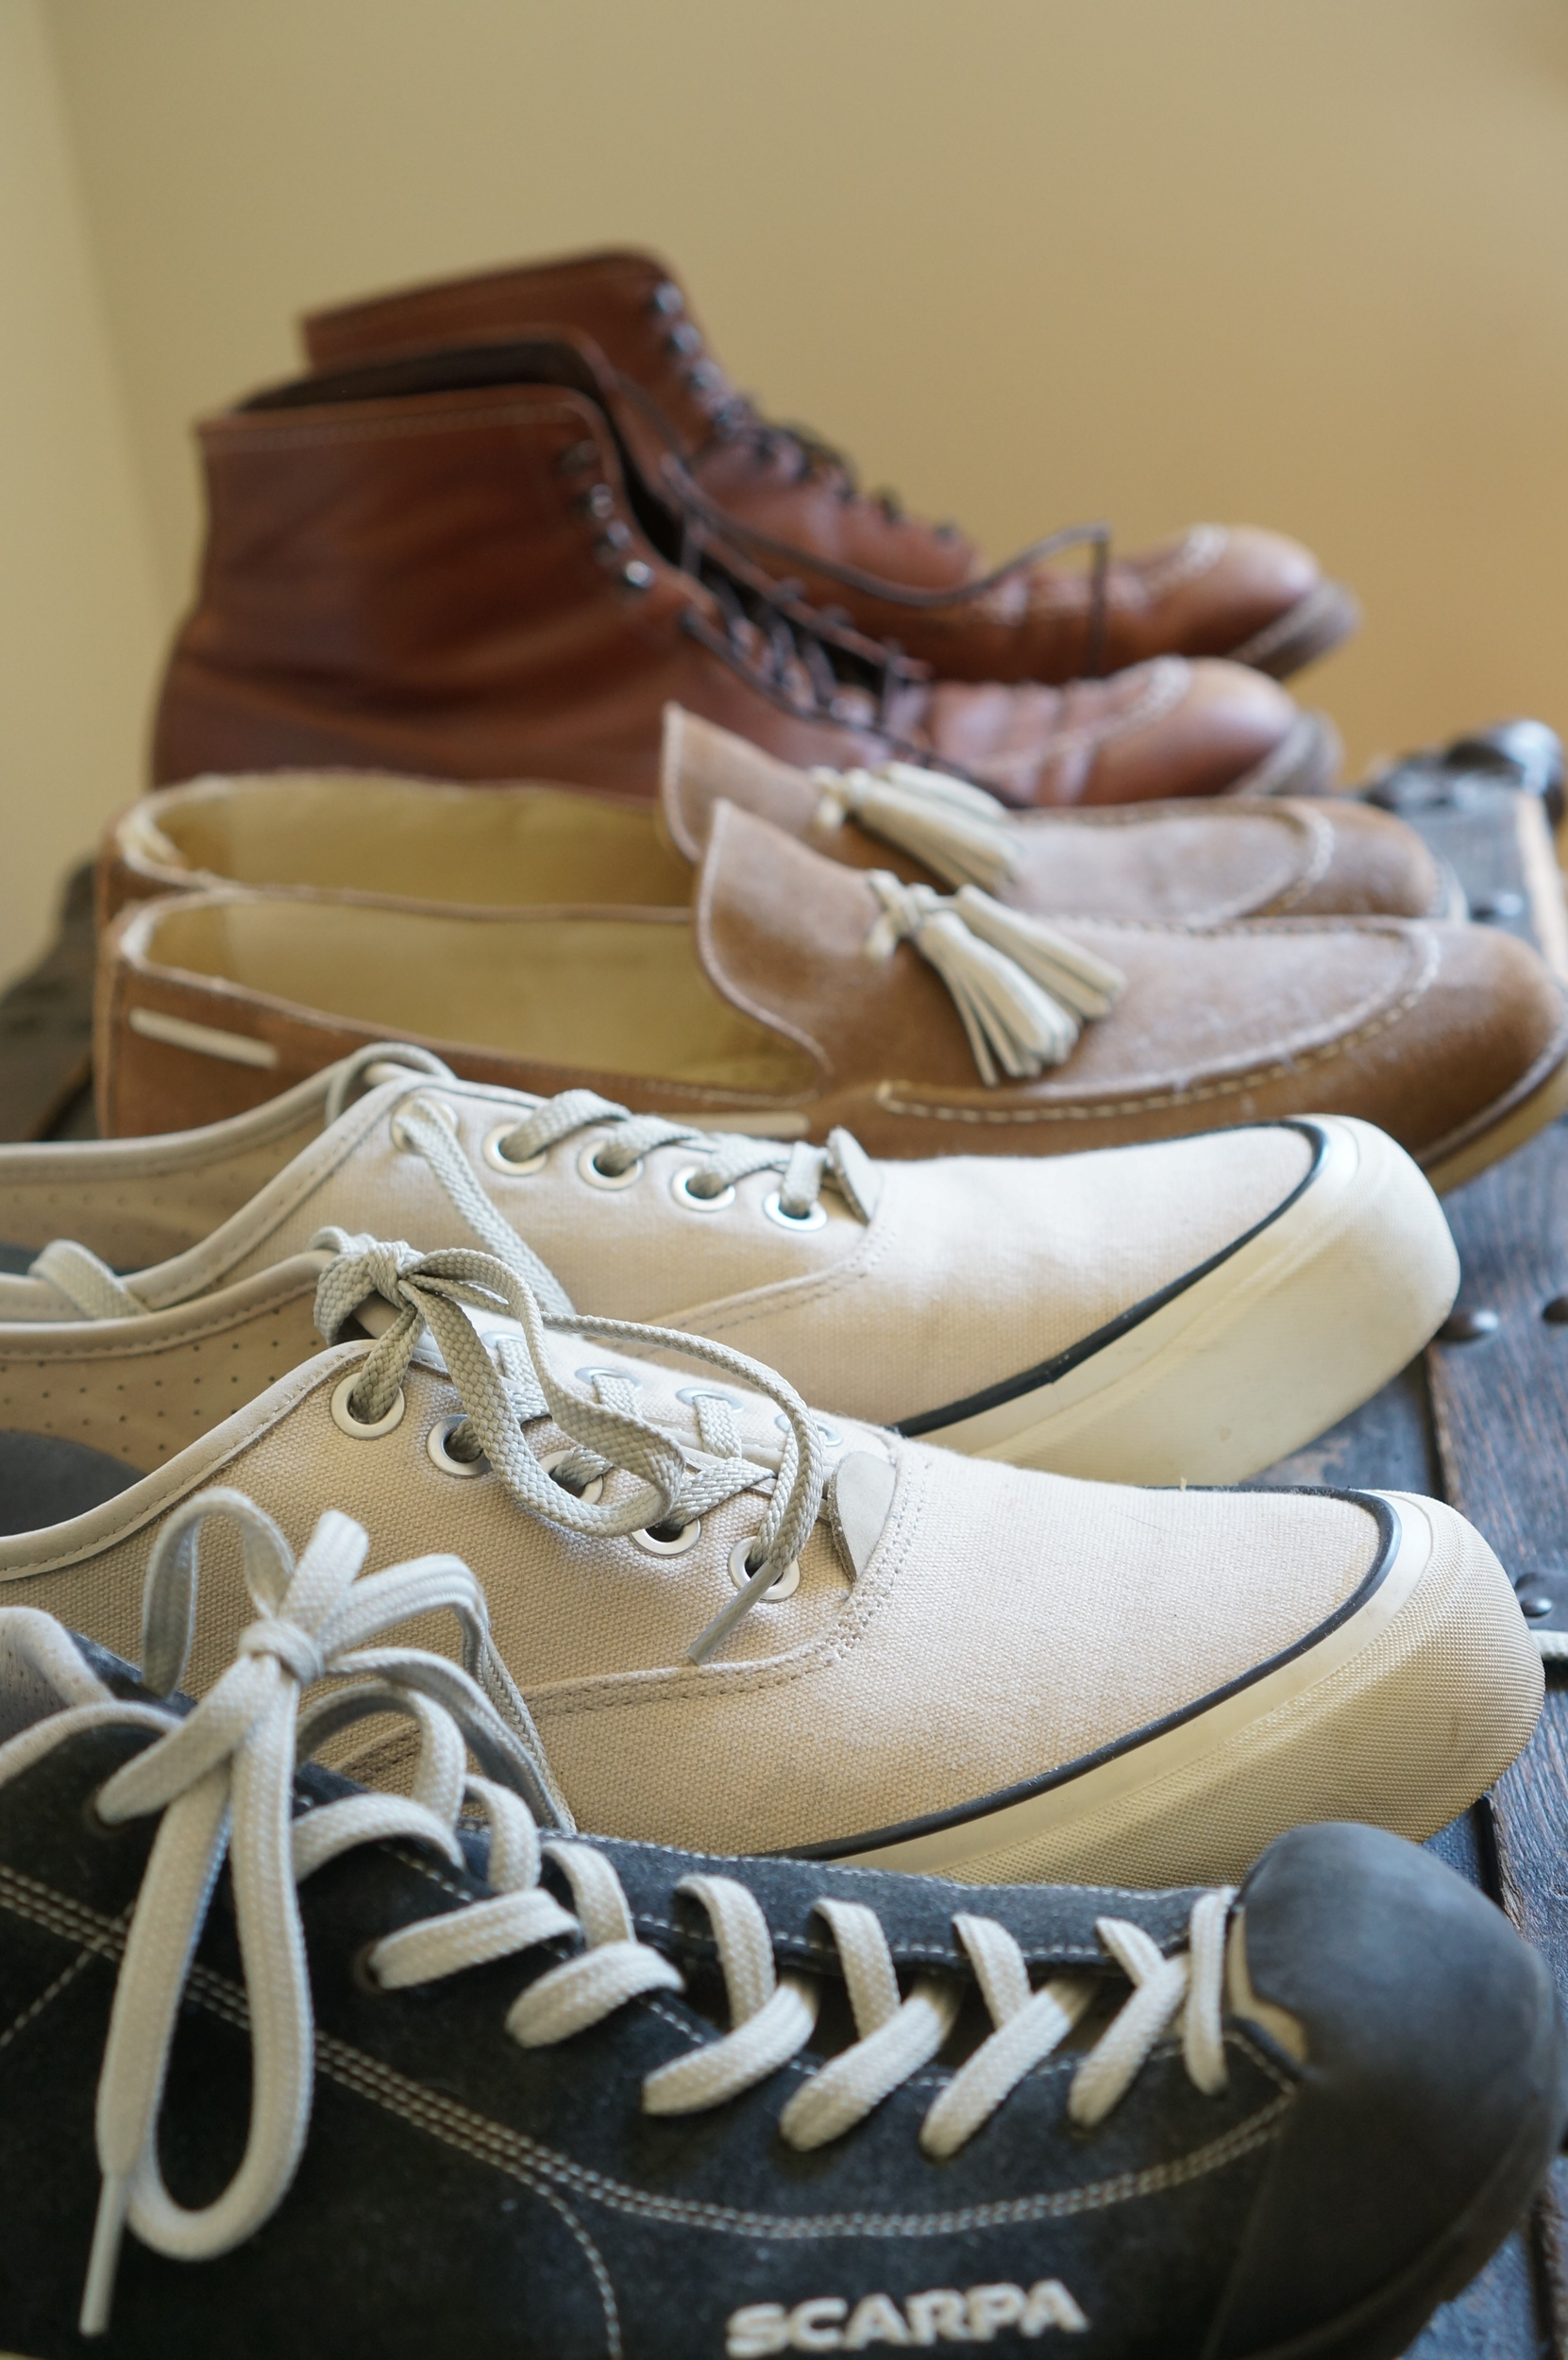 Best Men S Travel Shoes And Dress For A Vacation Reviewed